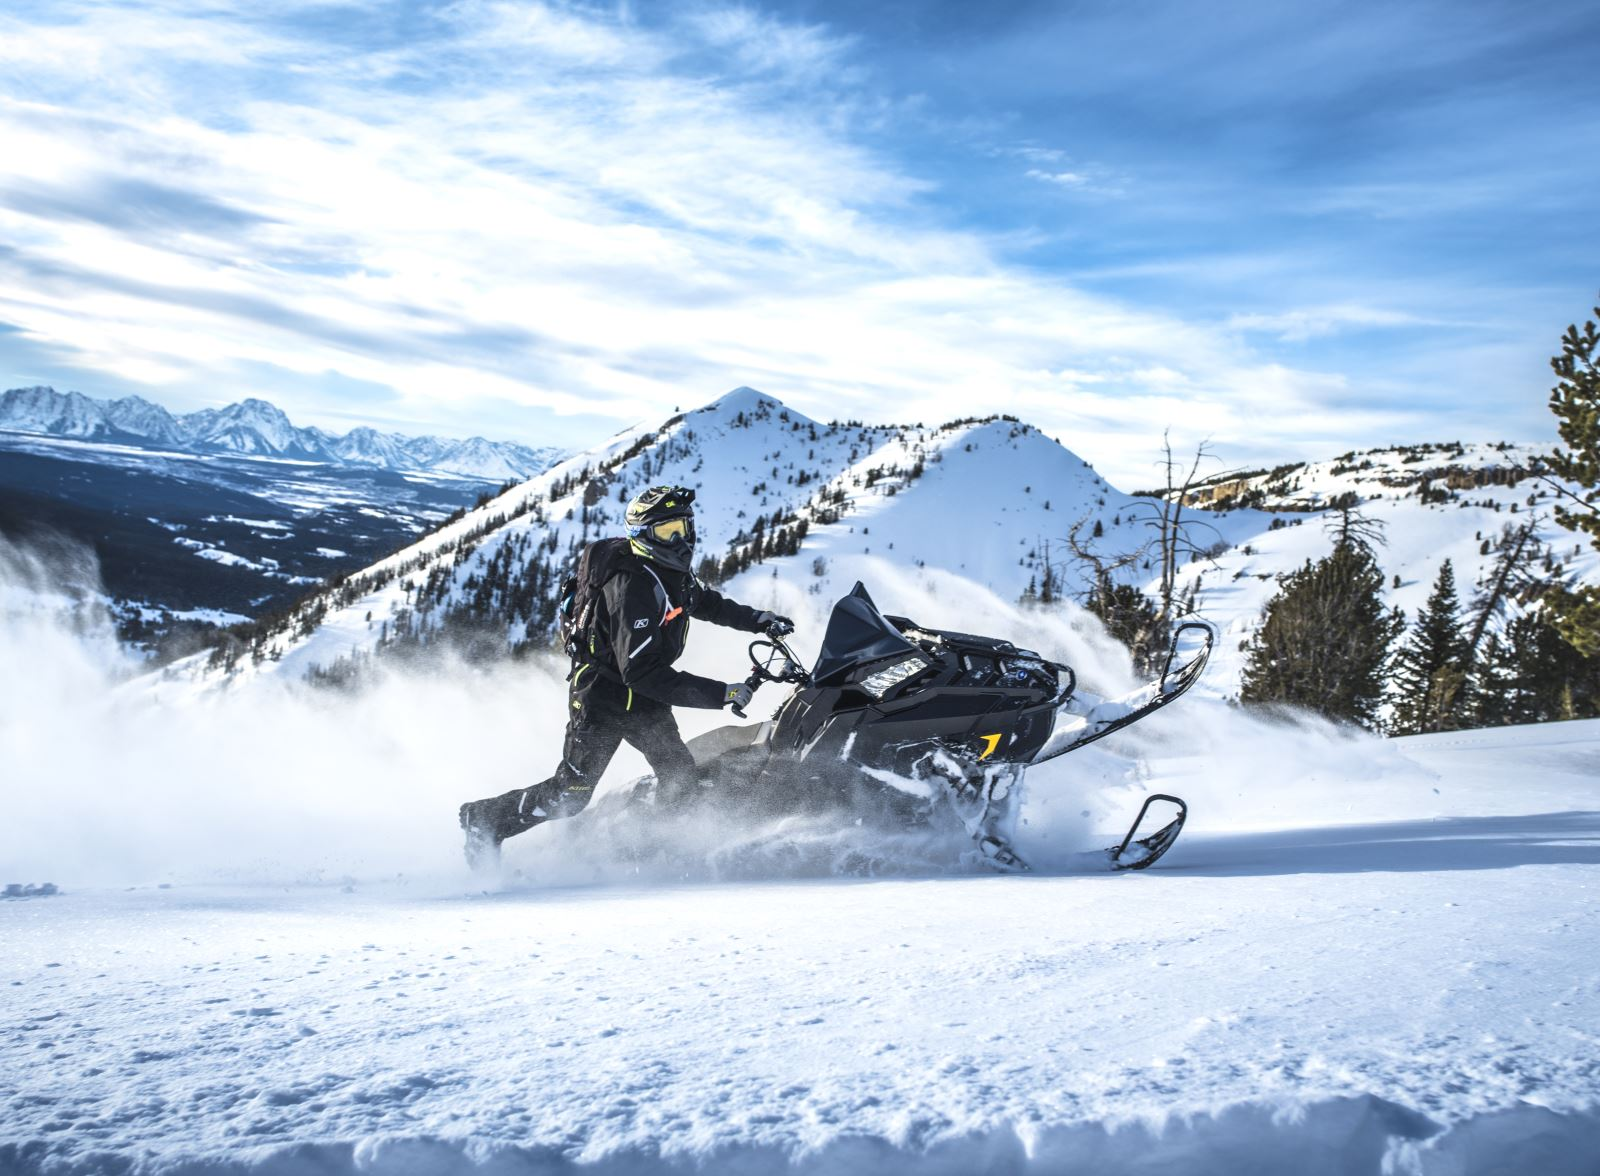 2019 Polaris Snowmobile Lineup Features New Technology, New Models, All-New Polaris 850 Patriot Engine